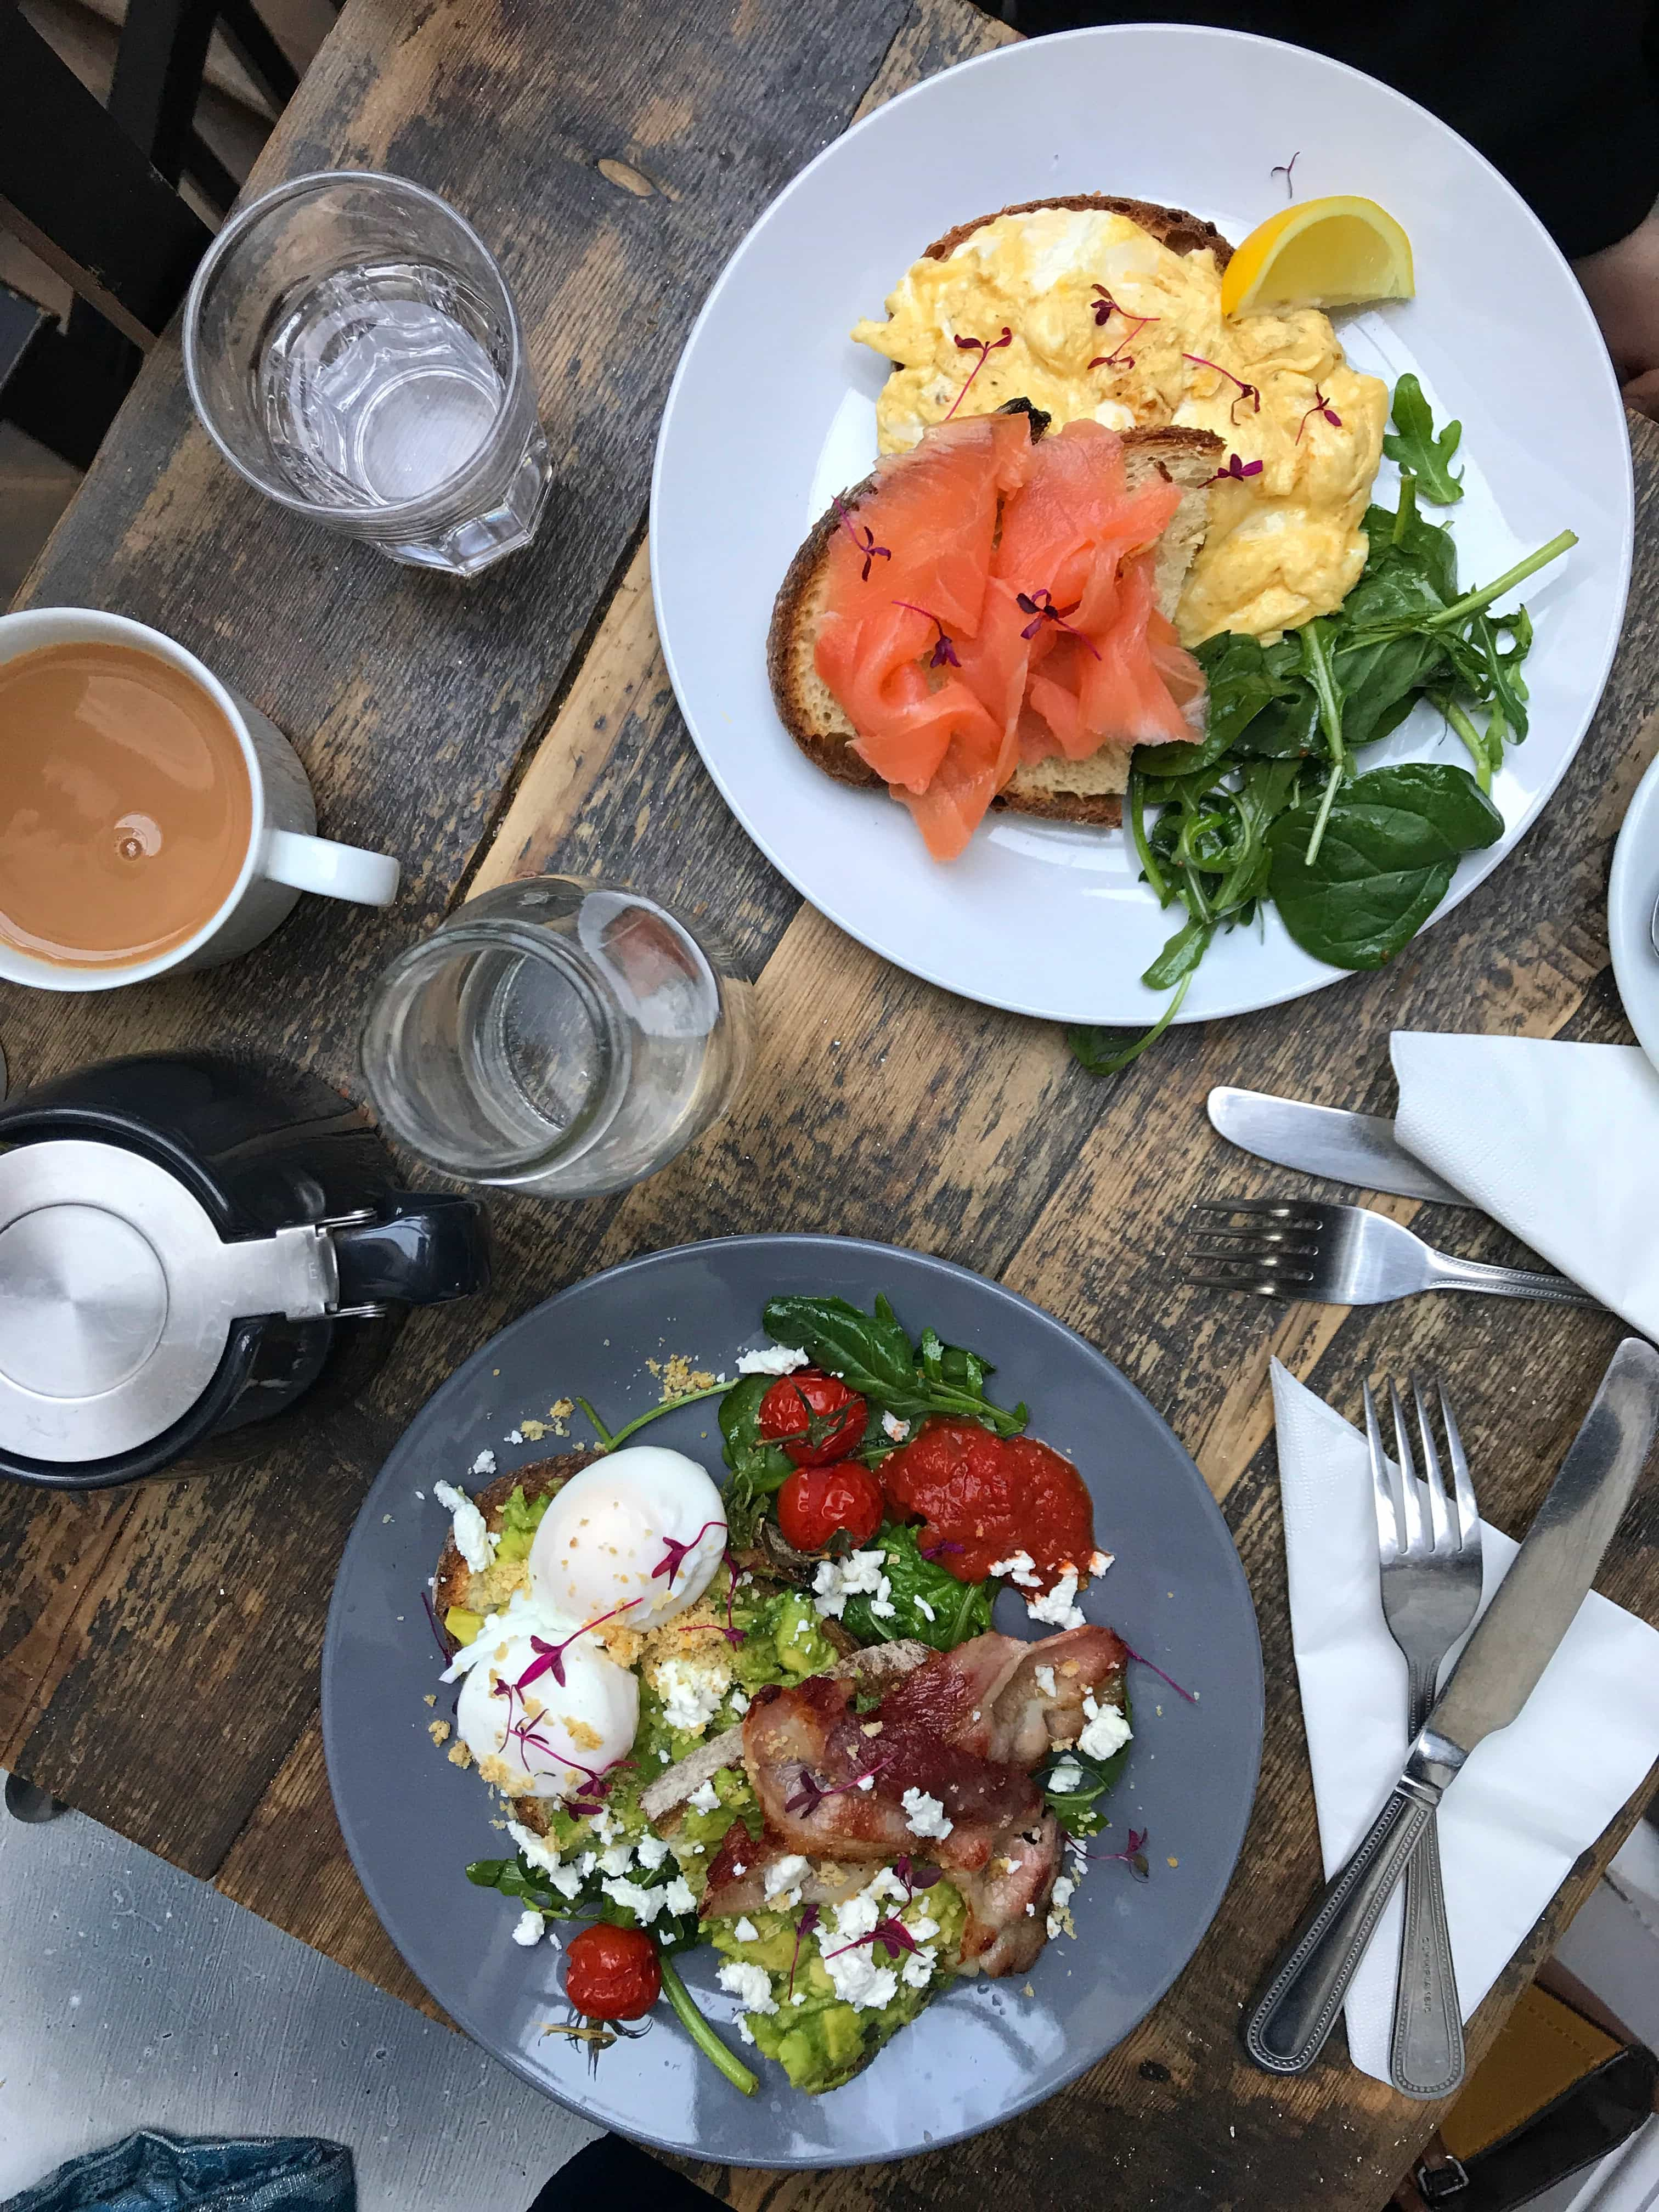 #365LDNCafes - 365 London Cafes in 365 Days By Alexandra Kalinowski